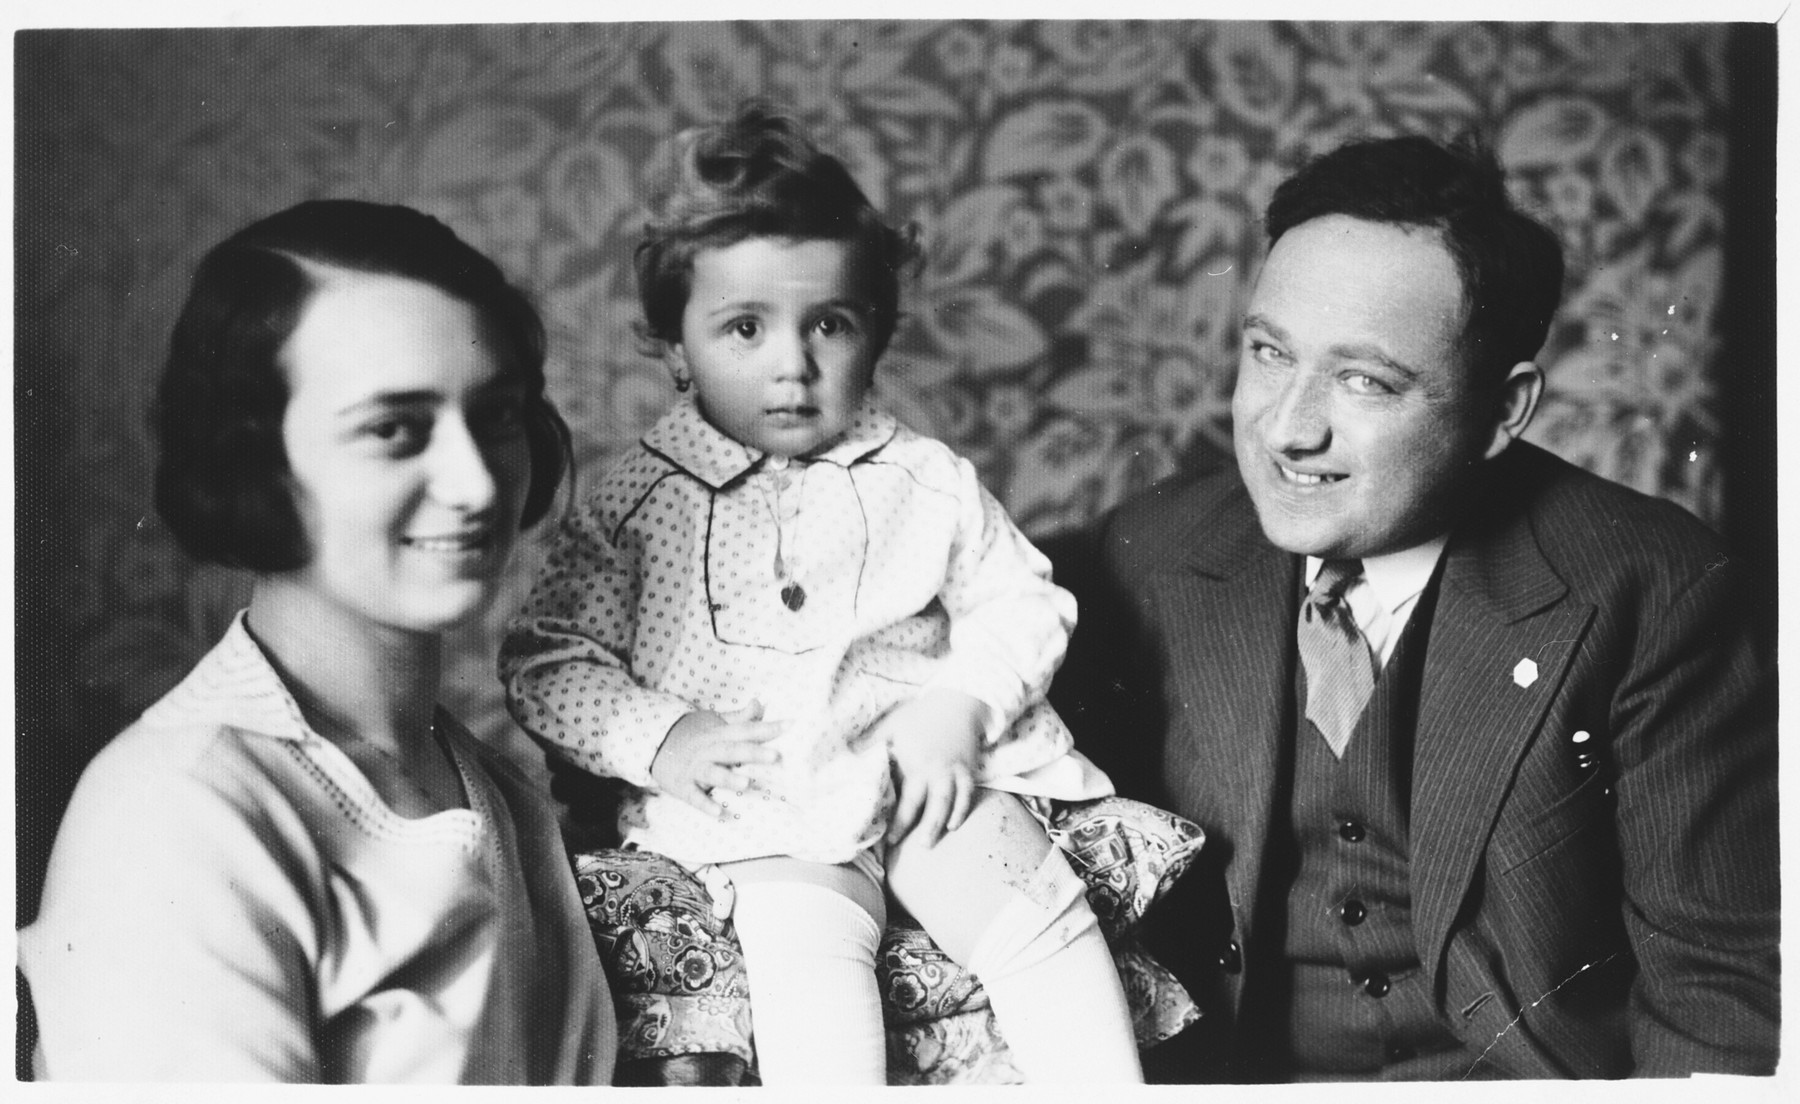 Studio portrait of a Jewish family in Osijek, Croatia.  Pictured are Marko and Ilonka Spitzer with their young daughter, Miriam.